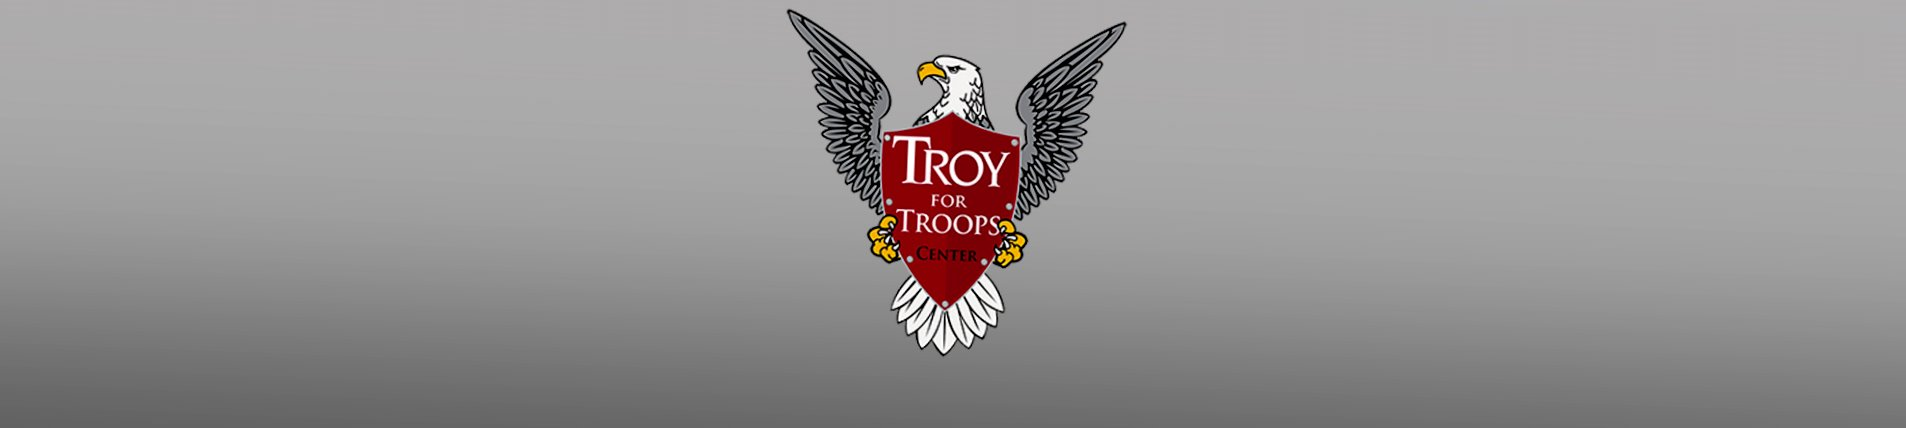 Troy University Recognizes Military Appreciation Month with Waived Application Fees